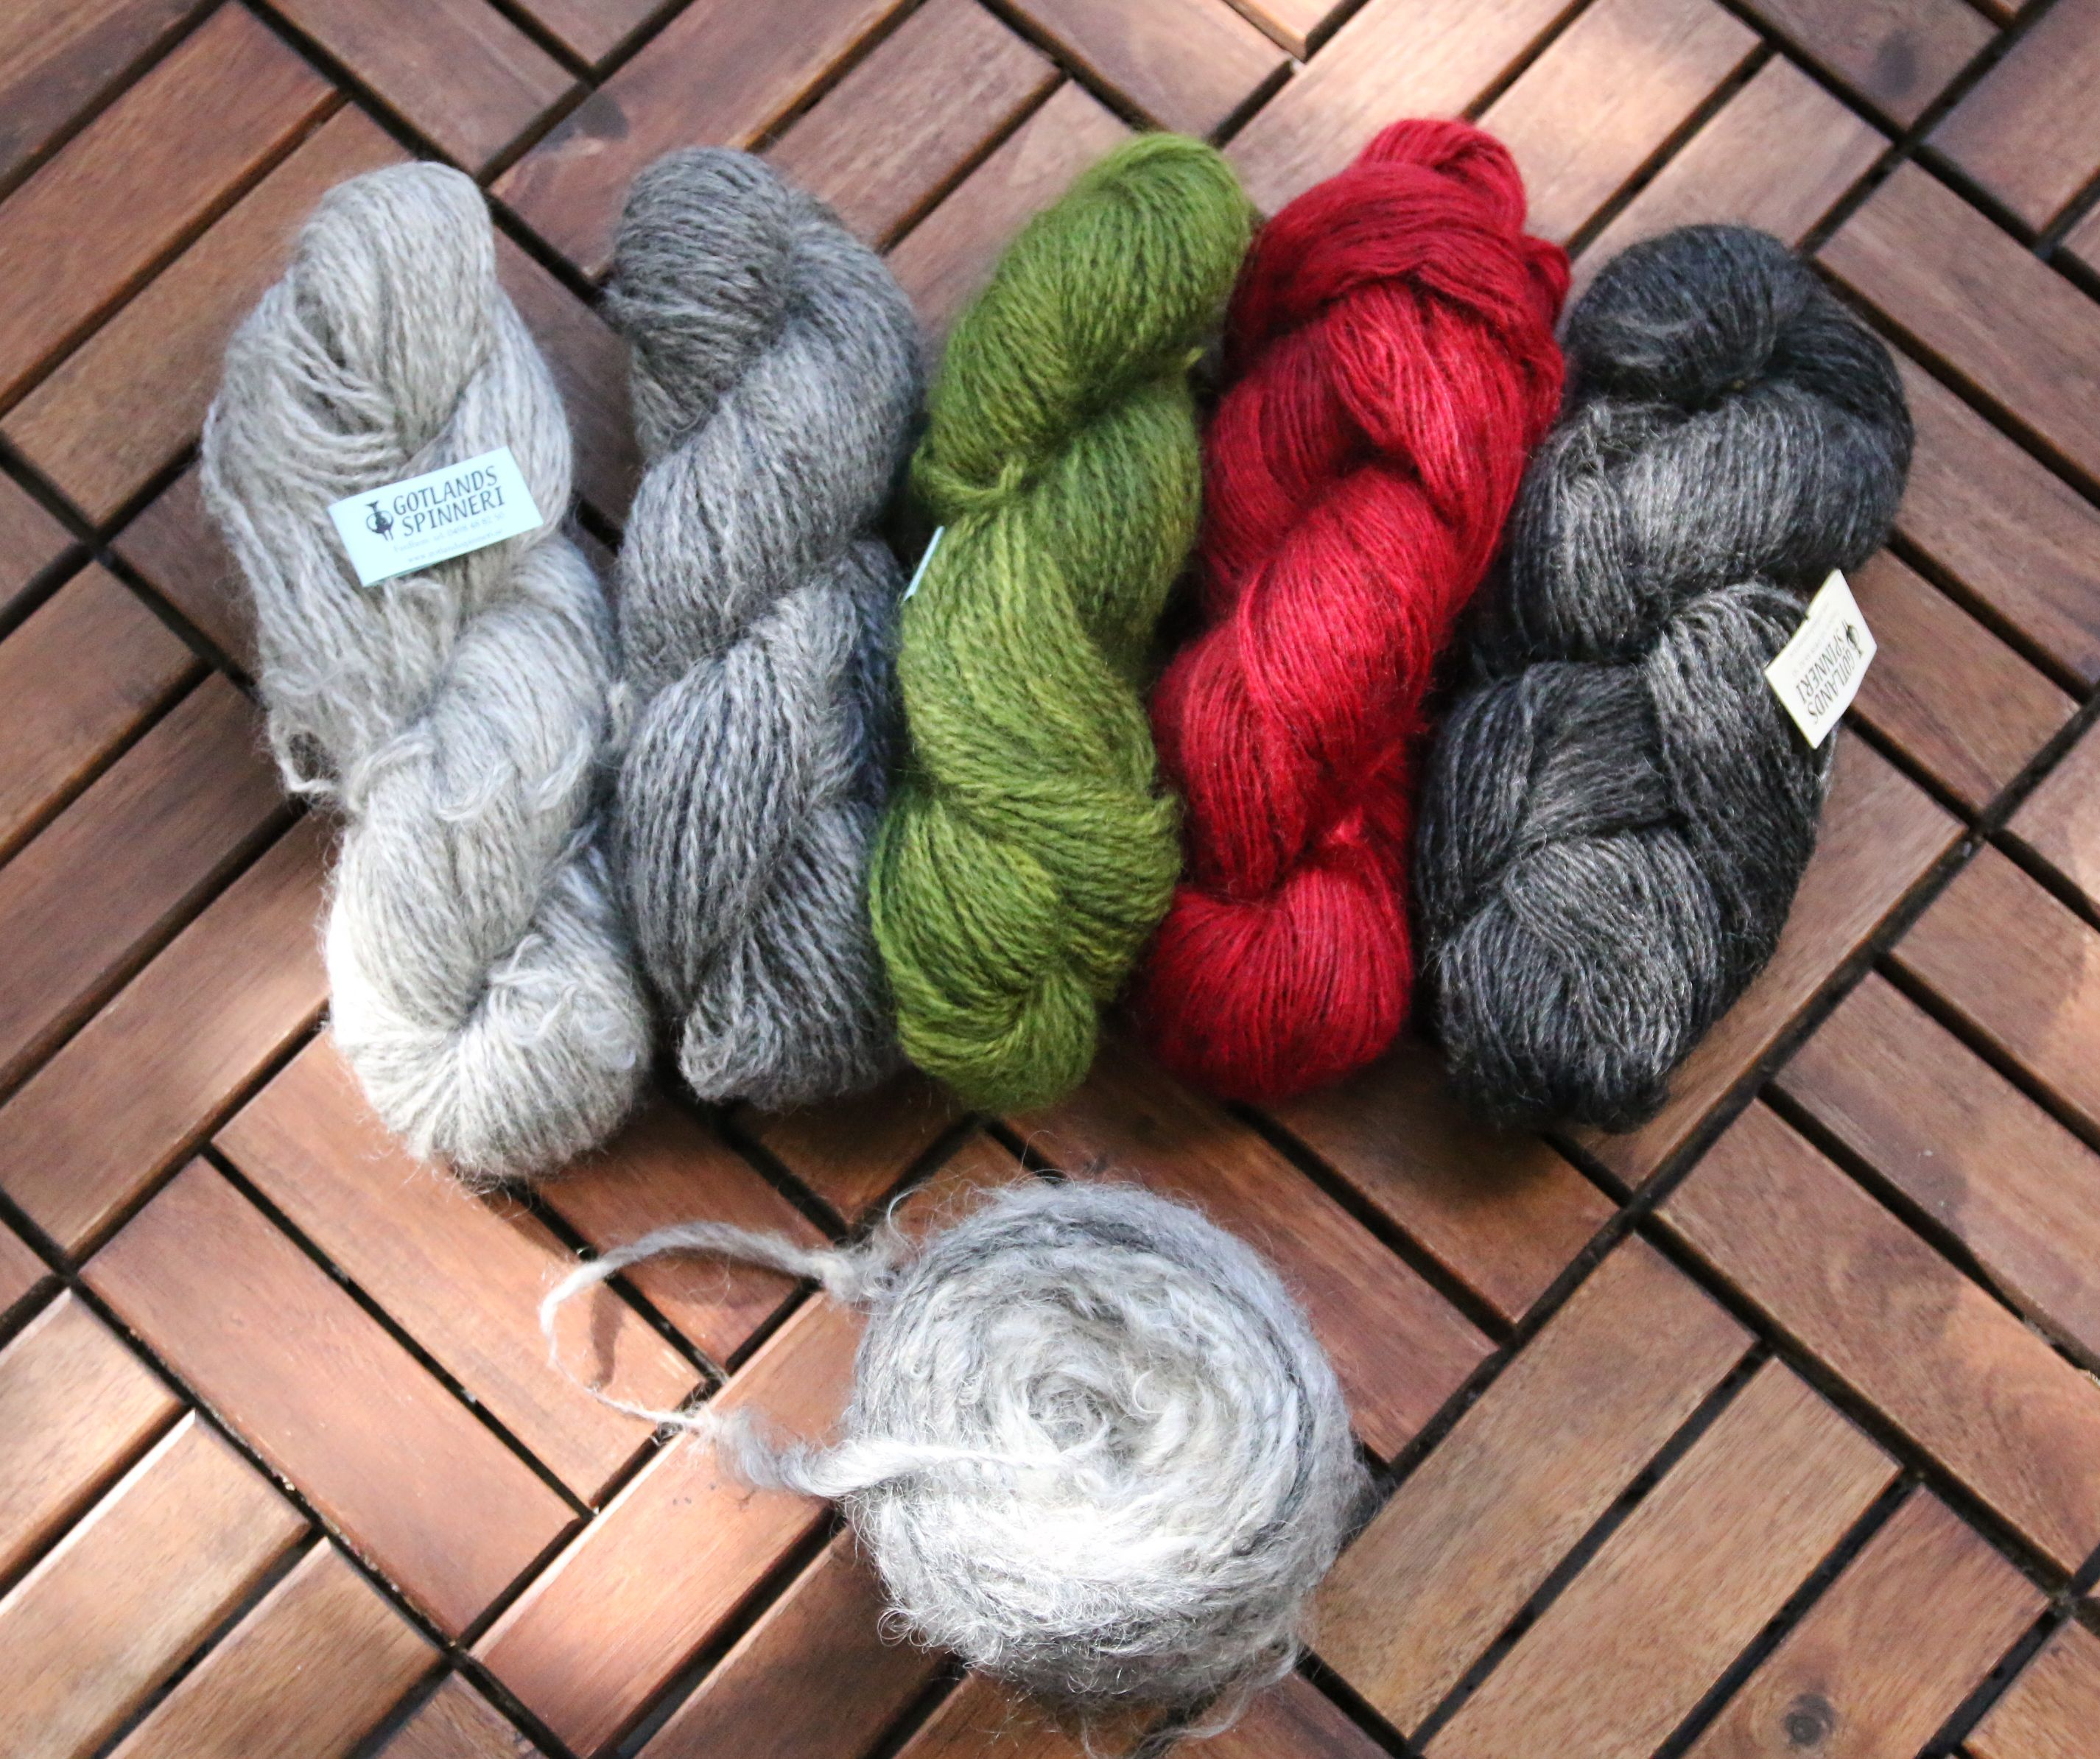 Beautiful natural wool yarns from Gotland.